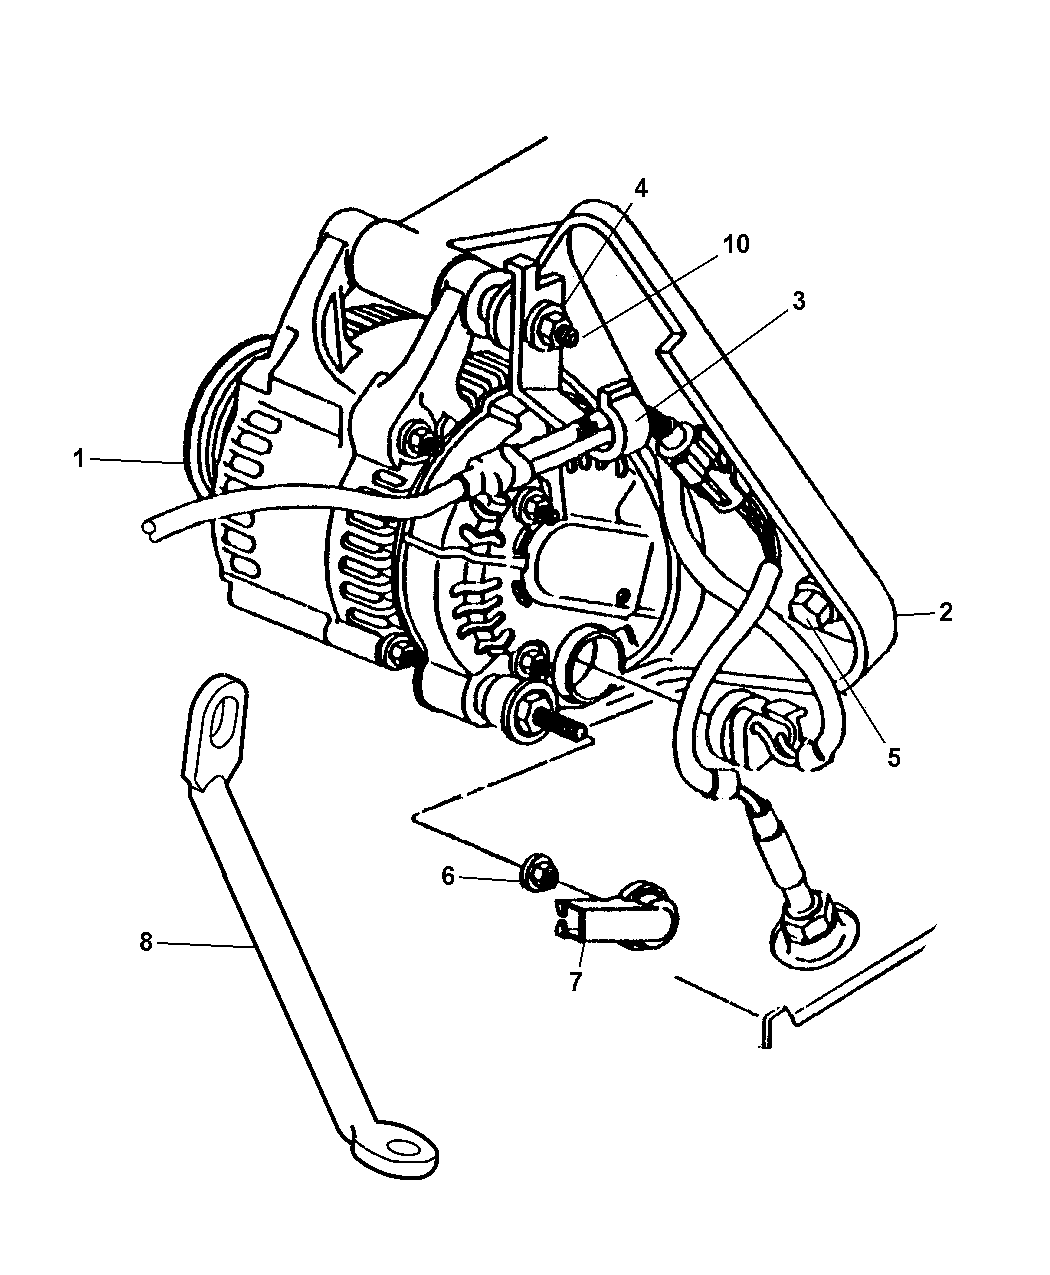 Prowler Wiring Diagram